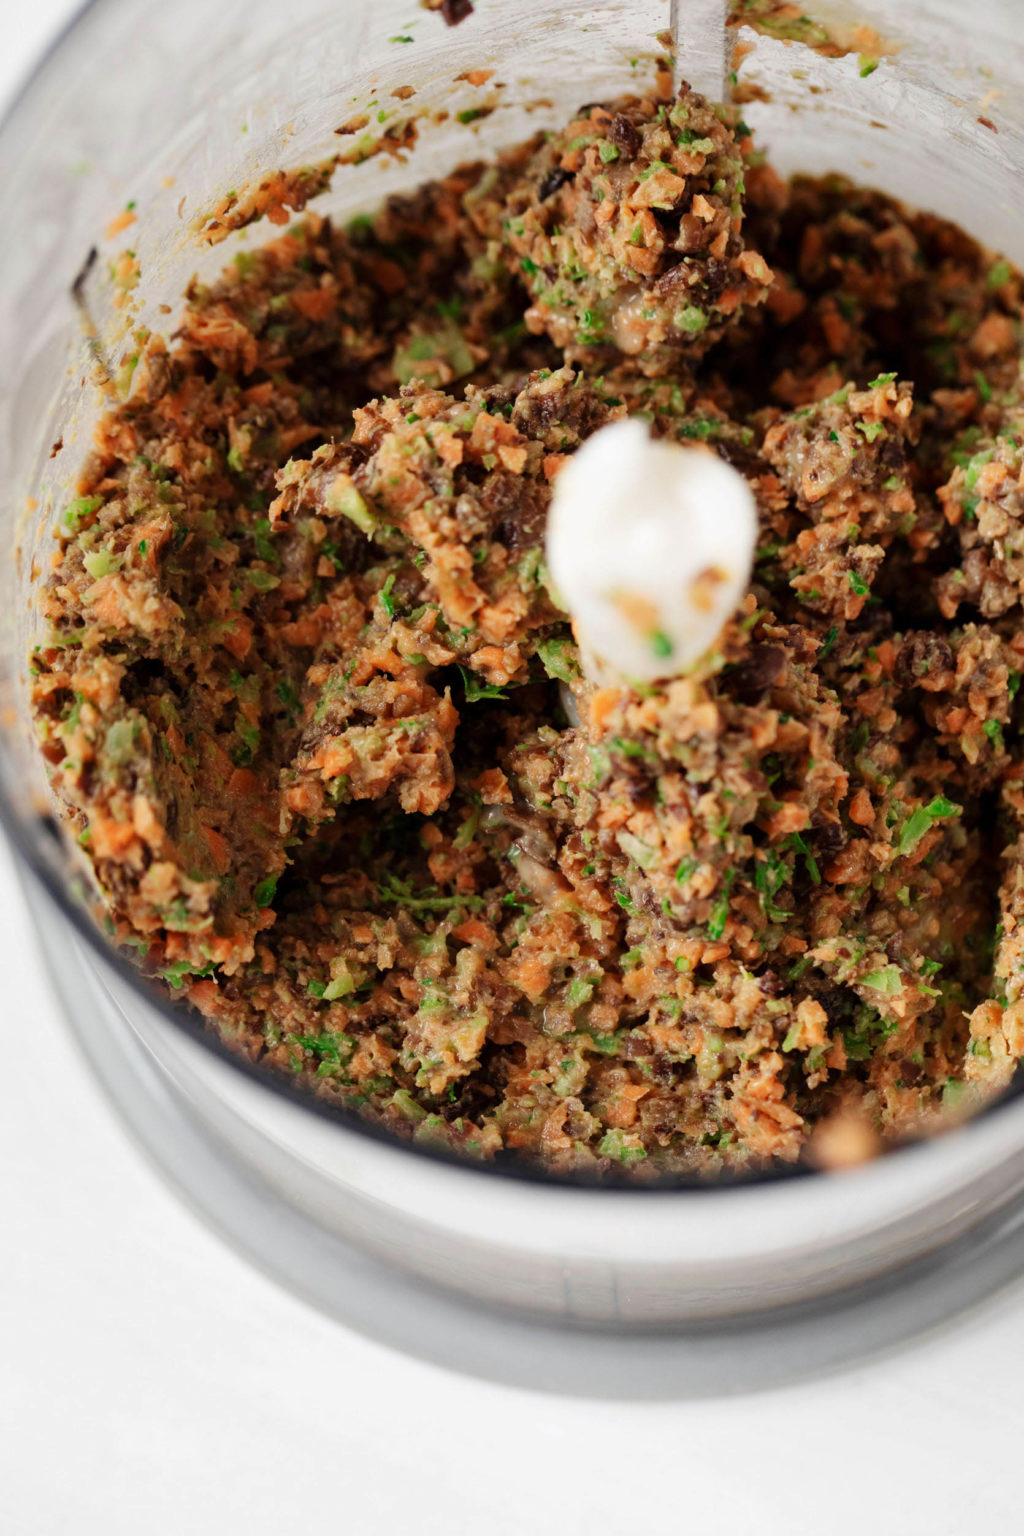 The bowl of a food processor is filled with finely chopped vegetables, lentils, herbs, and lemon juice.